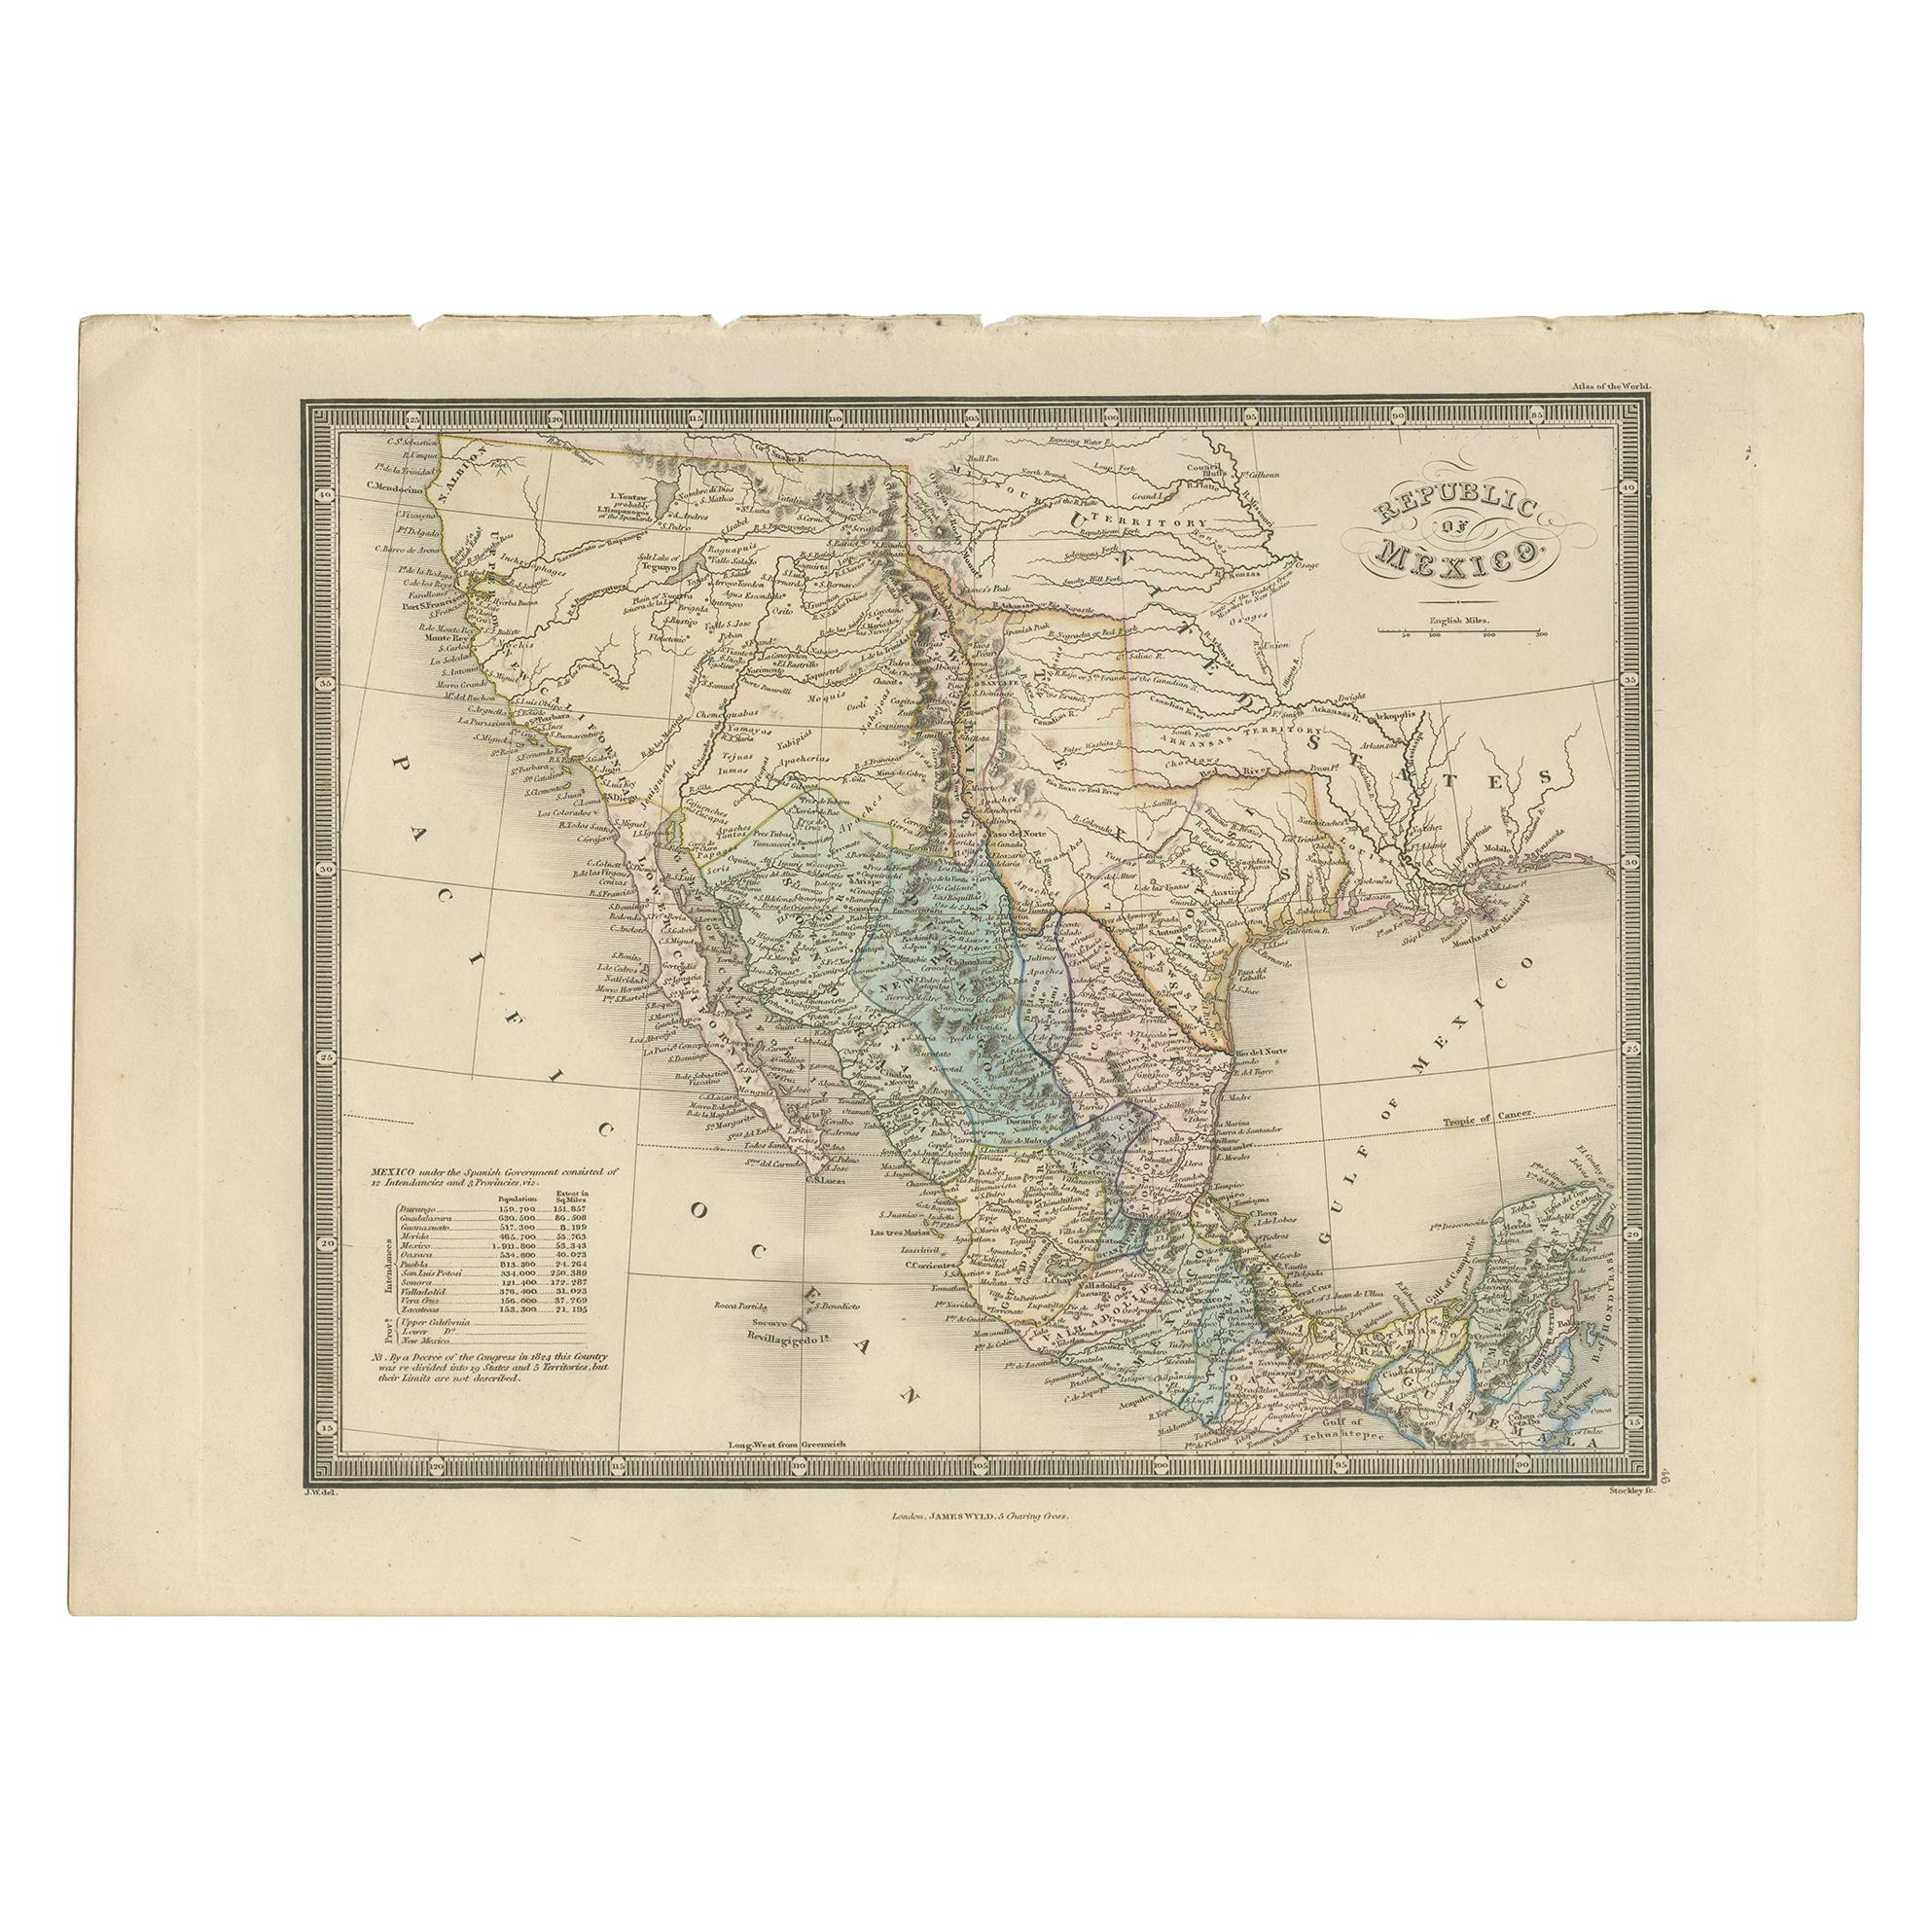 Antique Map of Mexico by Wyld, '1845'